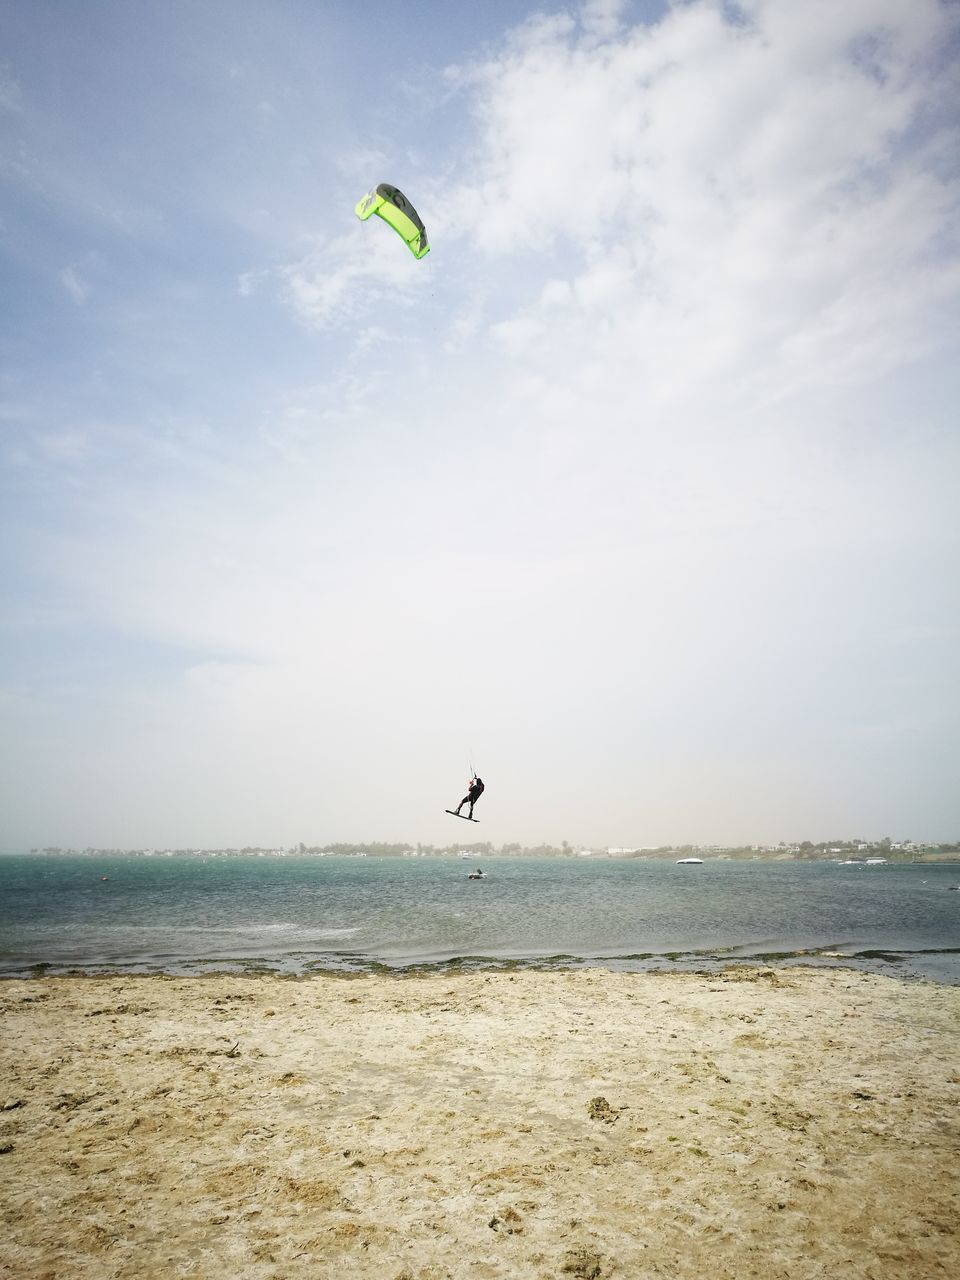 sea, flying, mid-air, sky, horizon over water, beach, water, day, nature, outdoors, tranquil scene, scenics, leisure activity, one person, parachute, beauty in nature, cloud - sky, summer, tranquility, vacations, real people, adventure, extreme sports, sport, bird, animal themes, paragliding, people